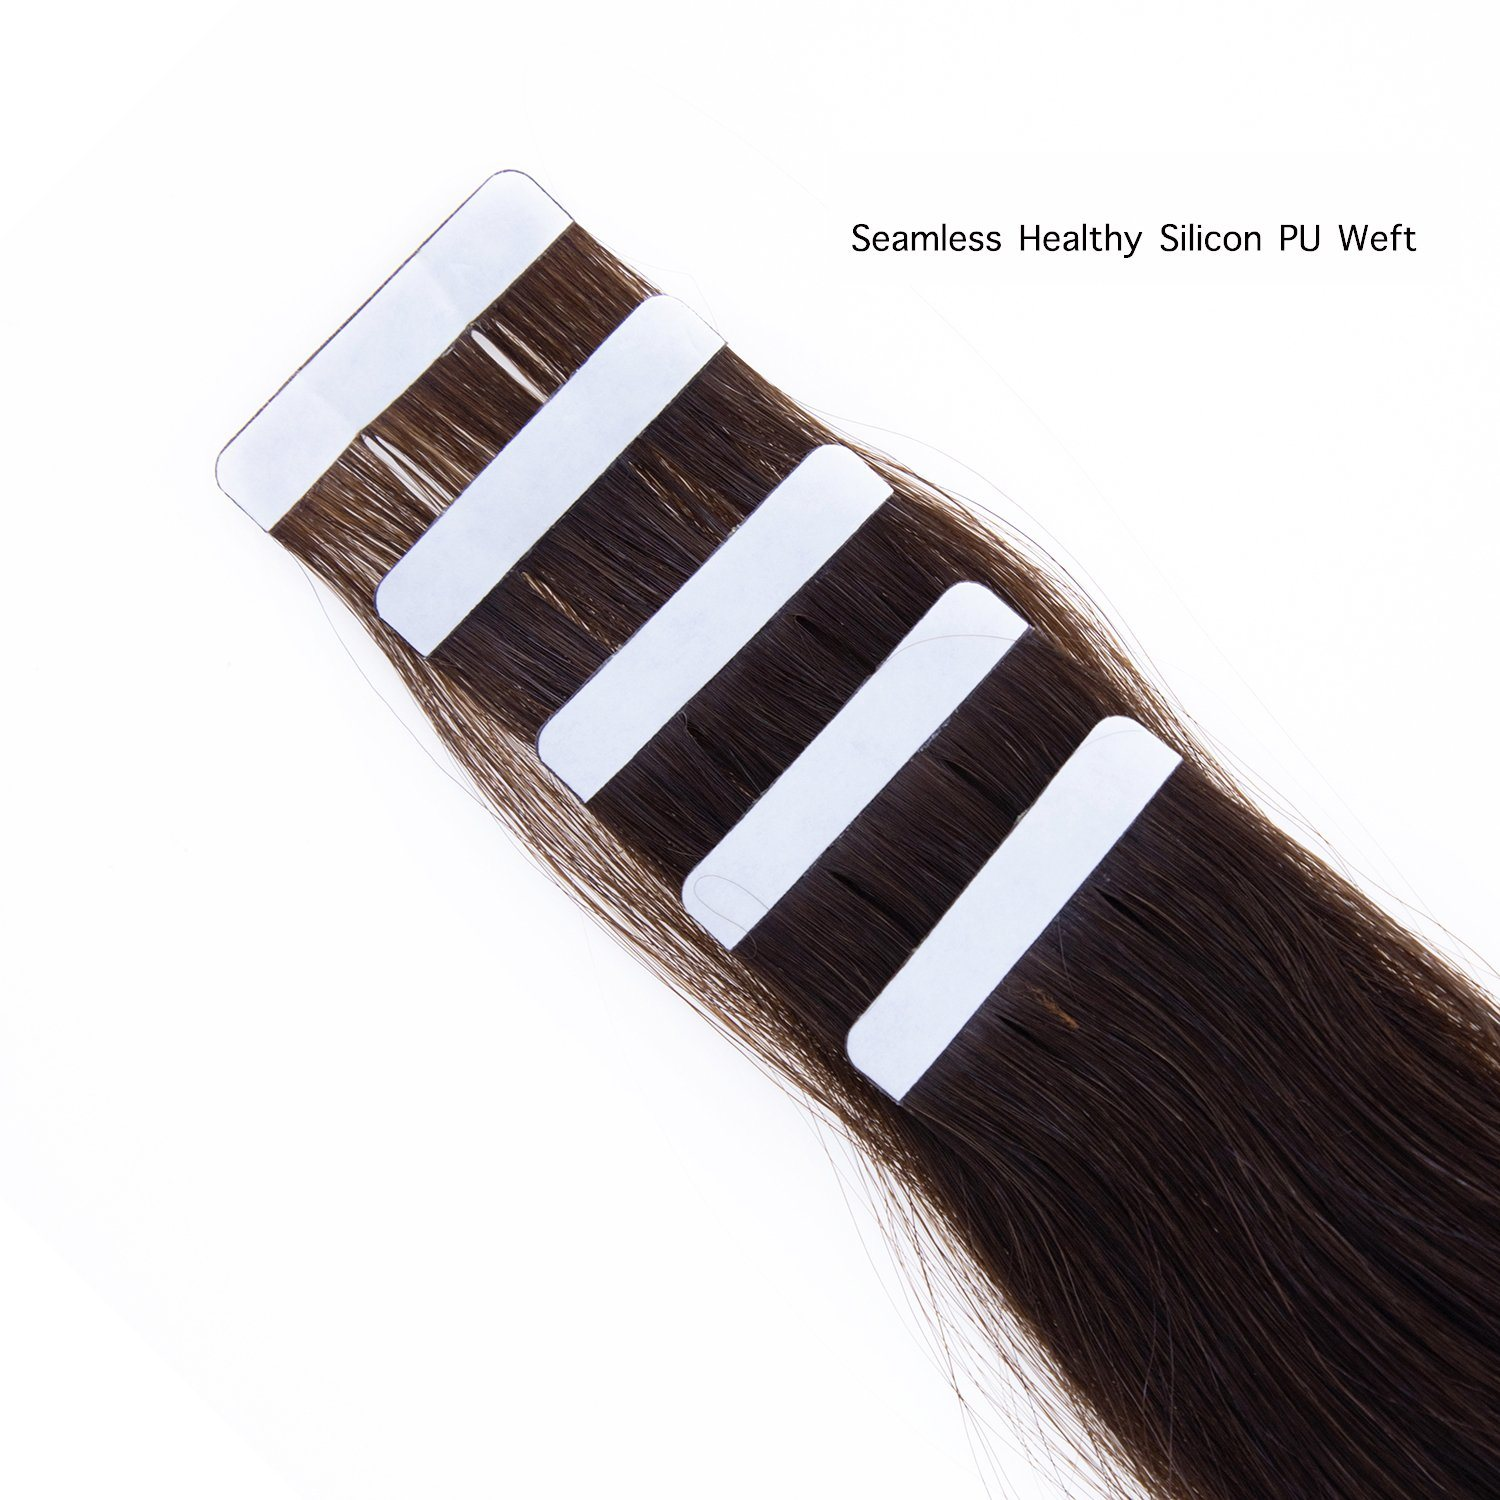 China Taped Hair Extension 20pcs 2 Dark Brown Body Wave Real Human Hair Double Drawn Salon Quality Photos Pictures Made In China Com